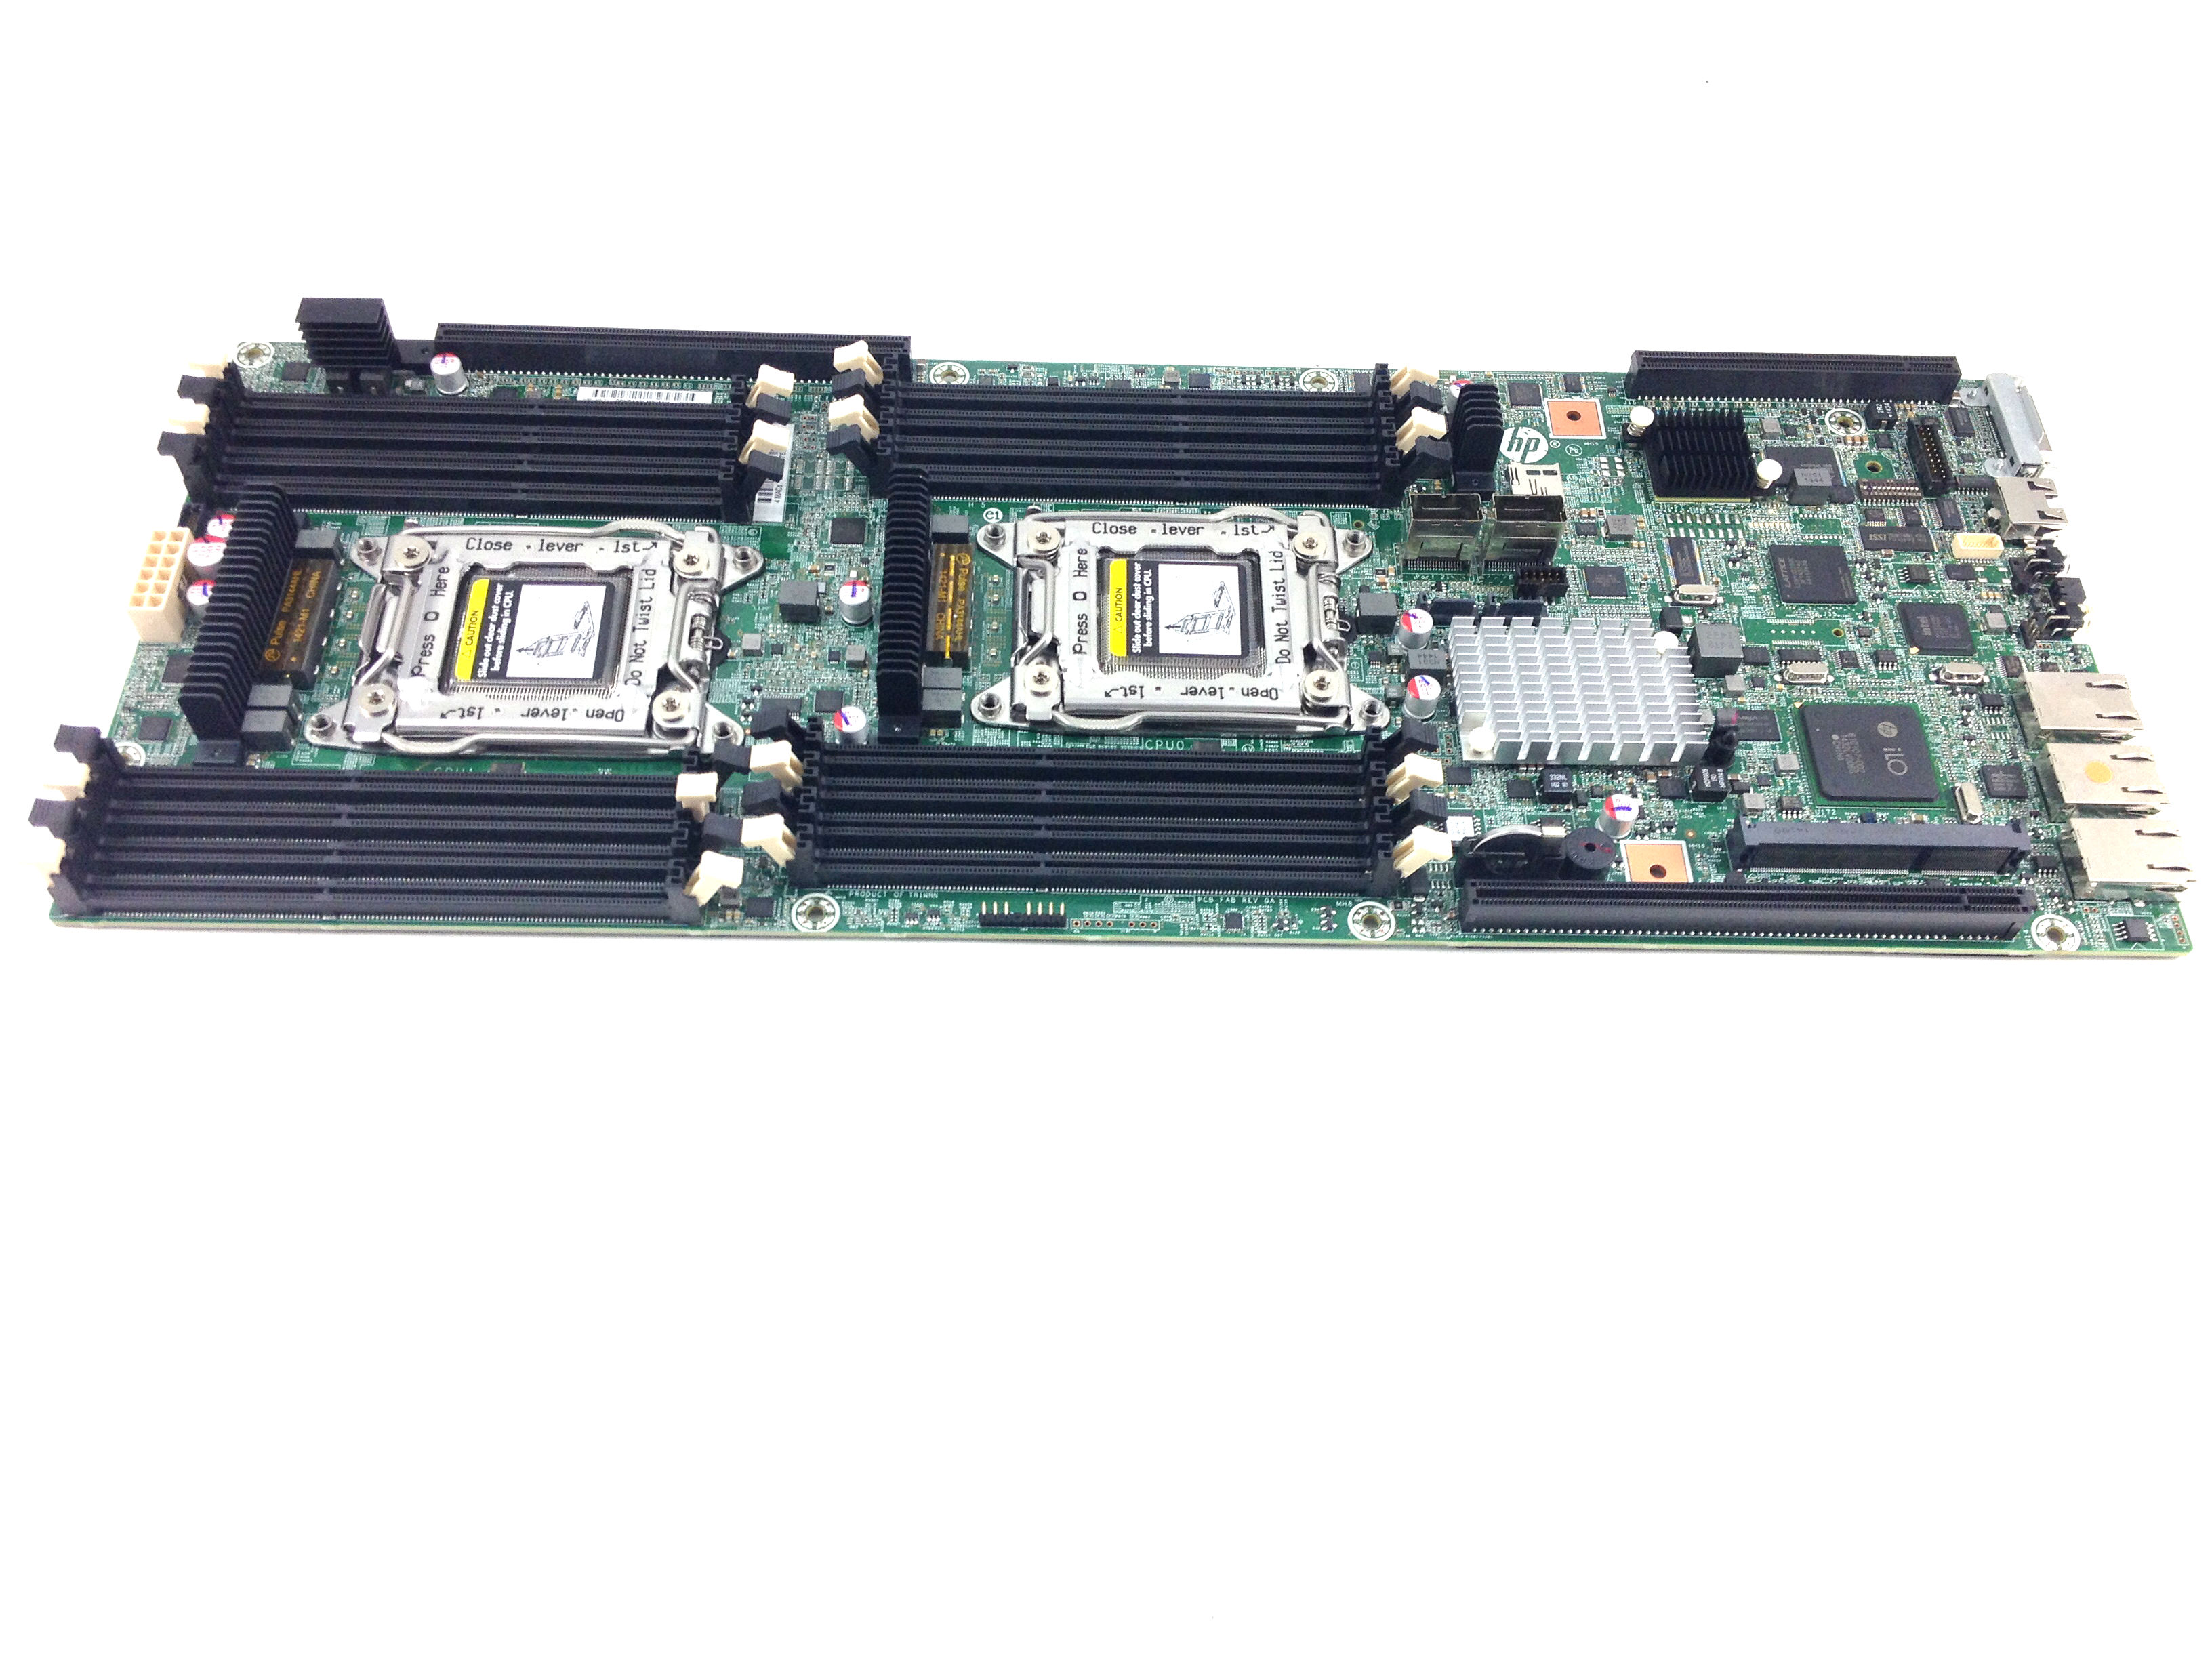 HP SL230S SL250S Gen8 Ivb Enhanced System Board (801946-001)